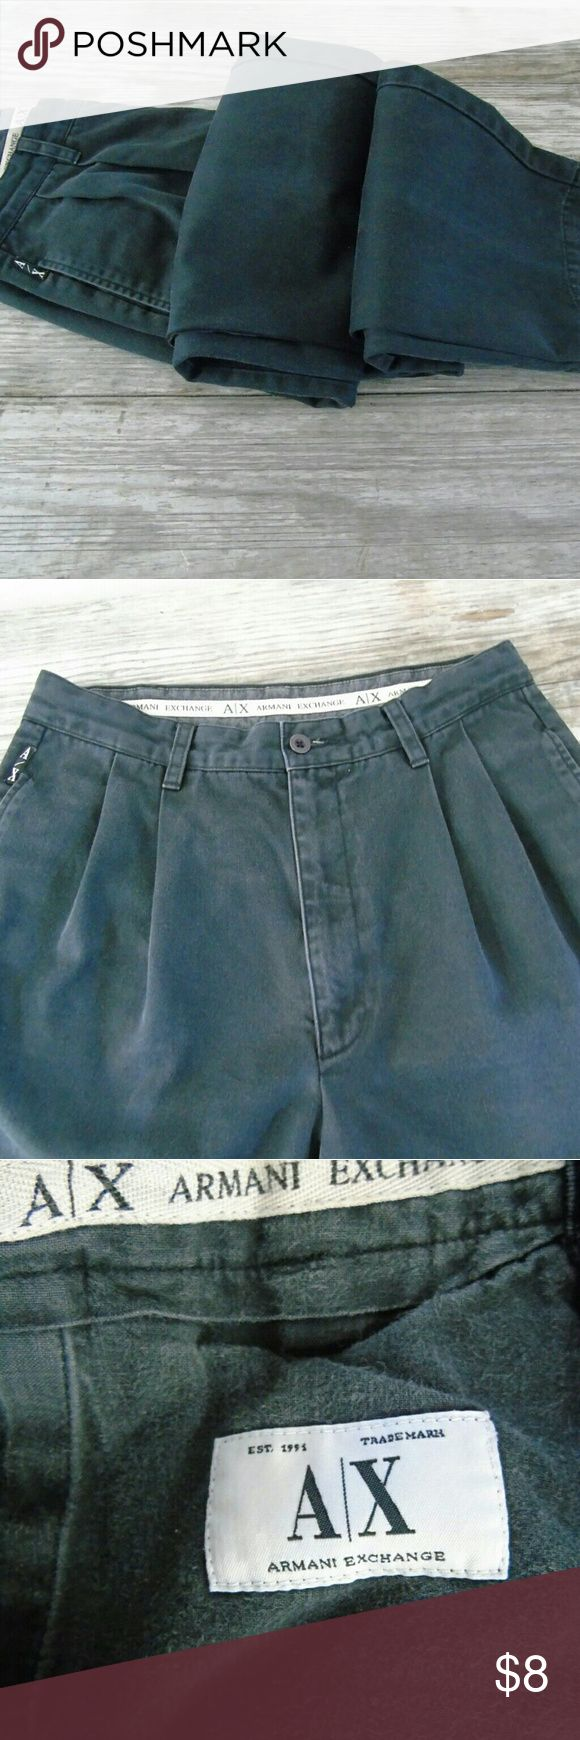 """Armani Exchange Faded Black Pants Workwear Armani Exchange Faded Black Heavy Cotton Pants Workwear Khakis Chinos . Pleated Front Workwear Trousers Jeans .Heavy Cotton .Faded Black, pleated front , waistband loops , 2 side pockets , 2 back pockets .Tagged 31 x 32 (but run smaller) , when lying flat waist 15"""" inseam 31""""  rise 12 """" hips 20"""" and 43"""" long . Armani Exchange Pants Straight Leg"""